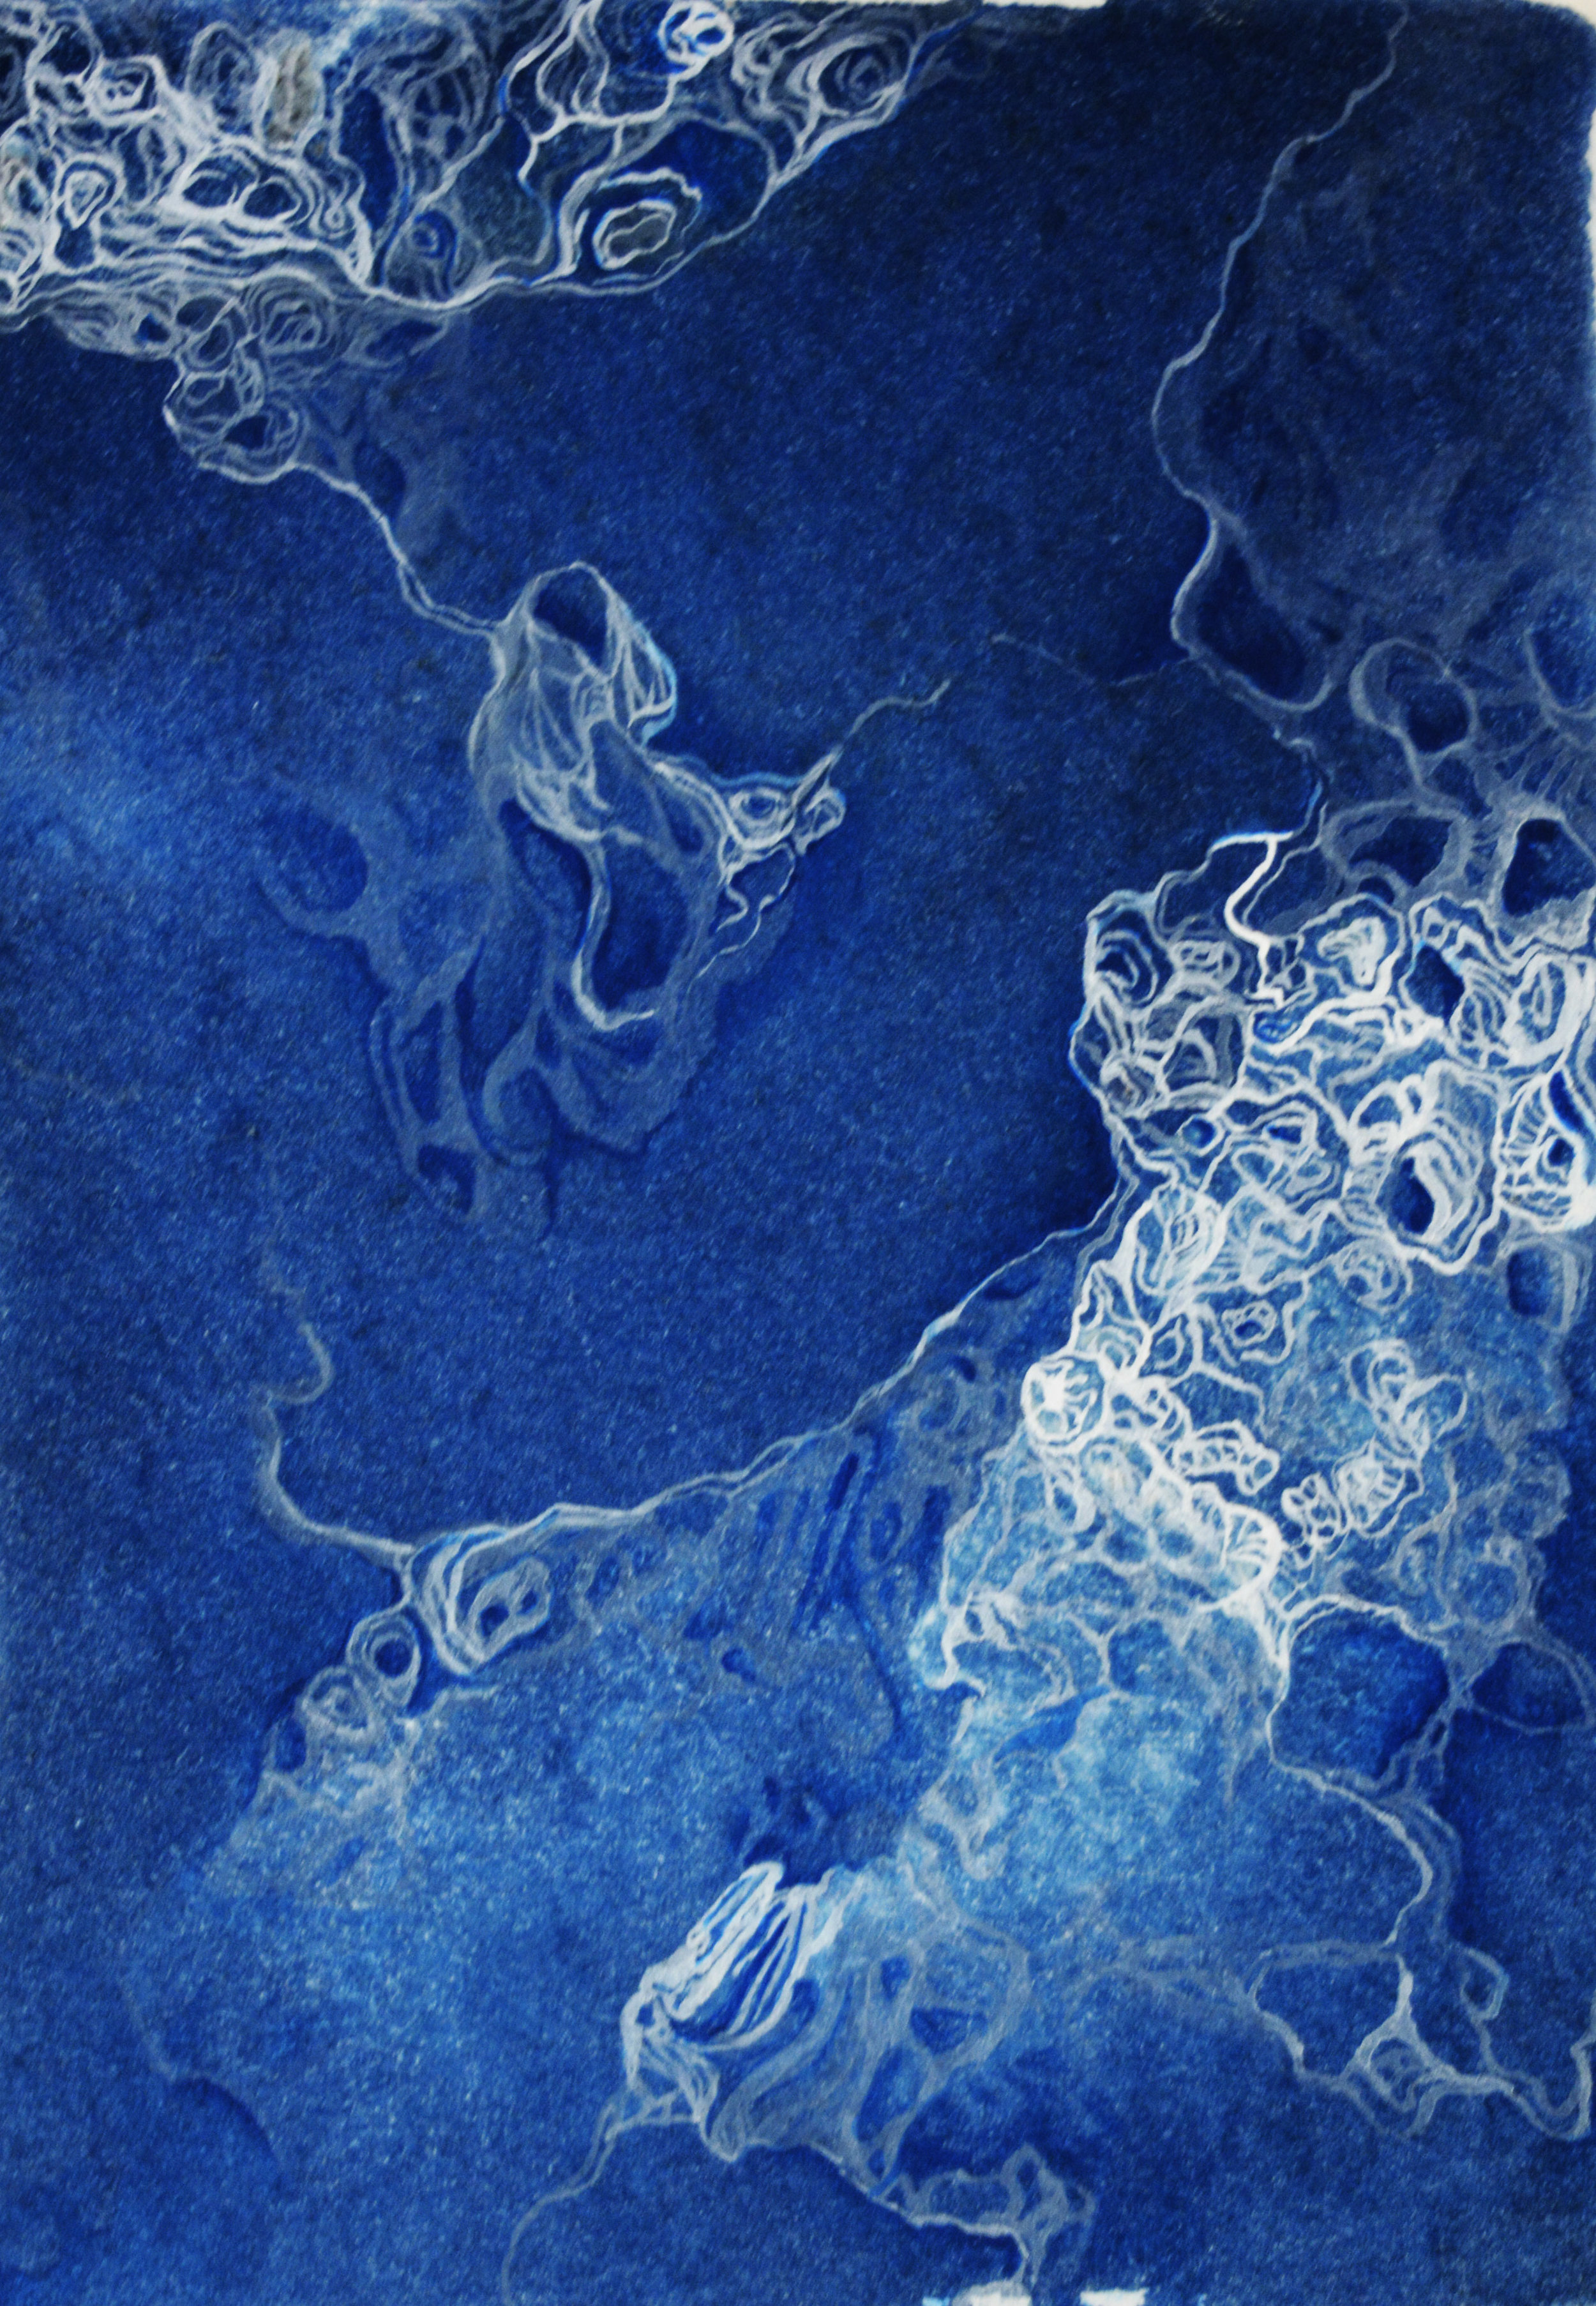 elaine camlin - Camlin_Elaine_Mapping Growth_2018_cyanotype and gouache on BFK Rives_2018_11cm x 14cm.jpg